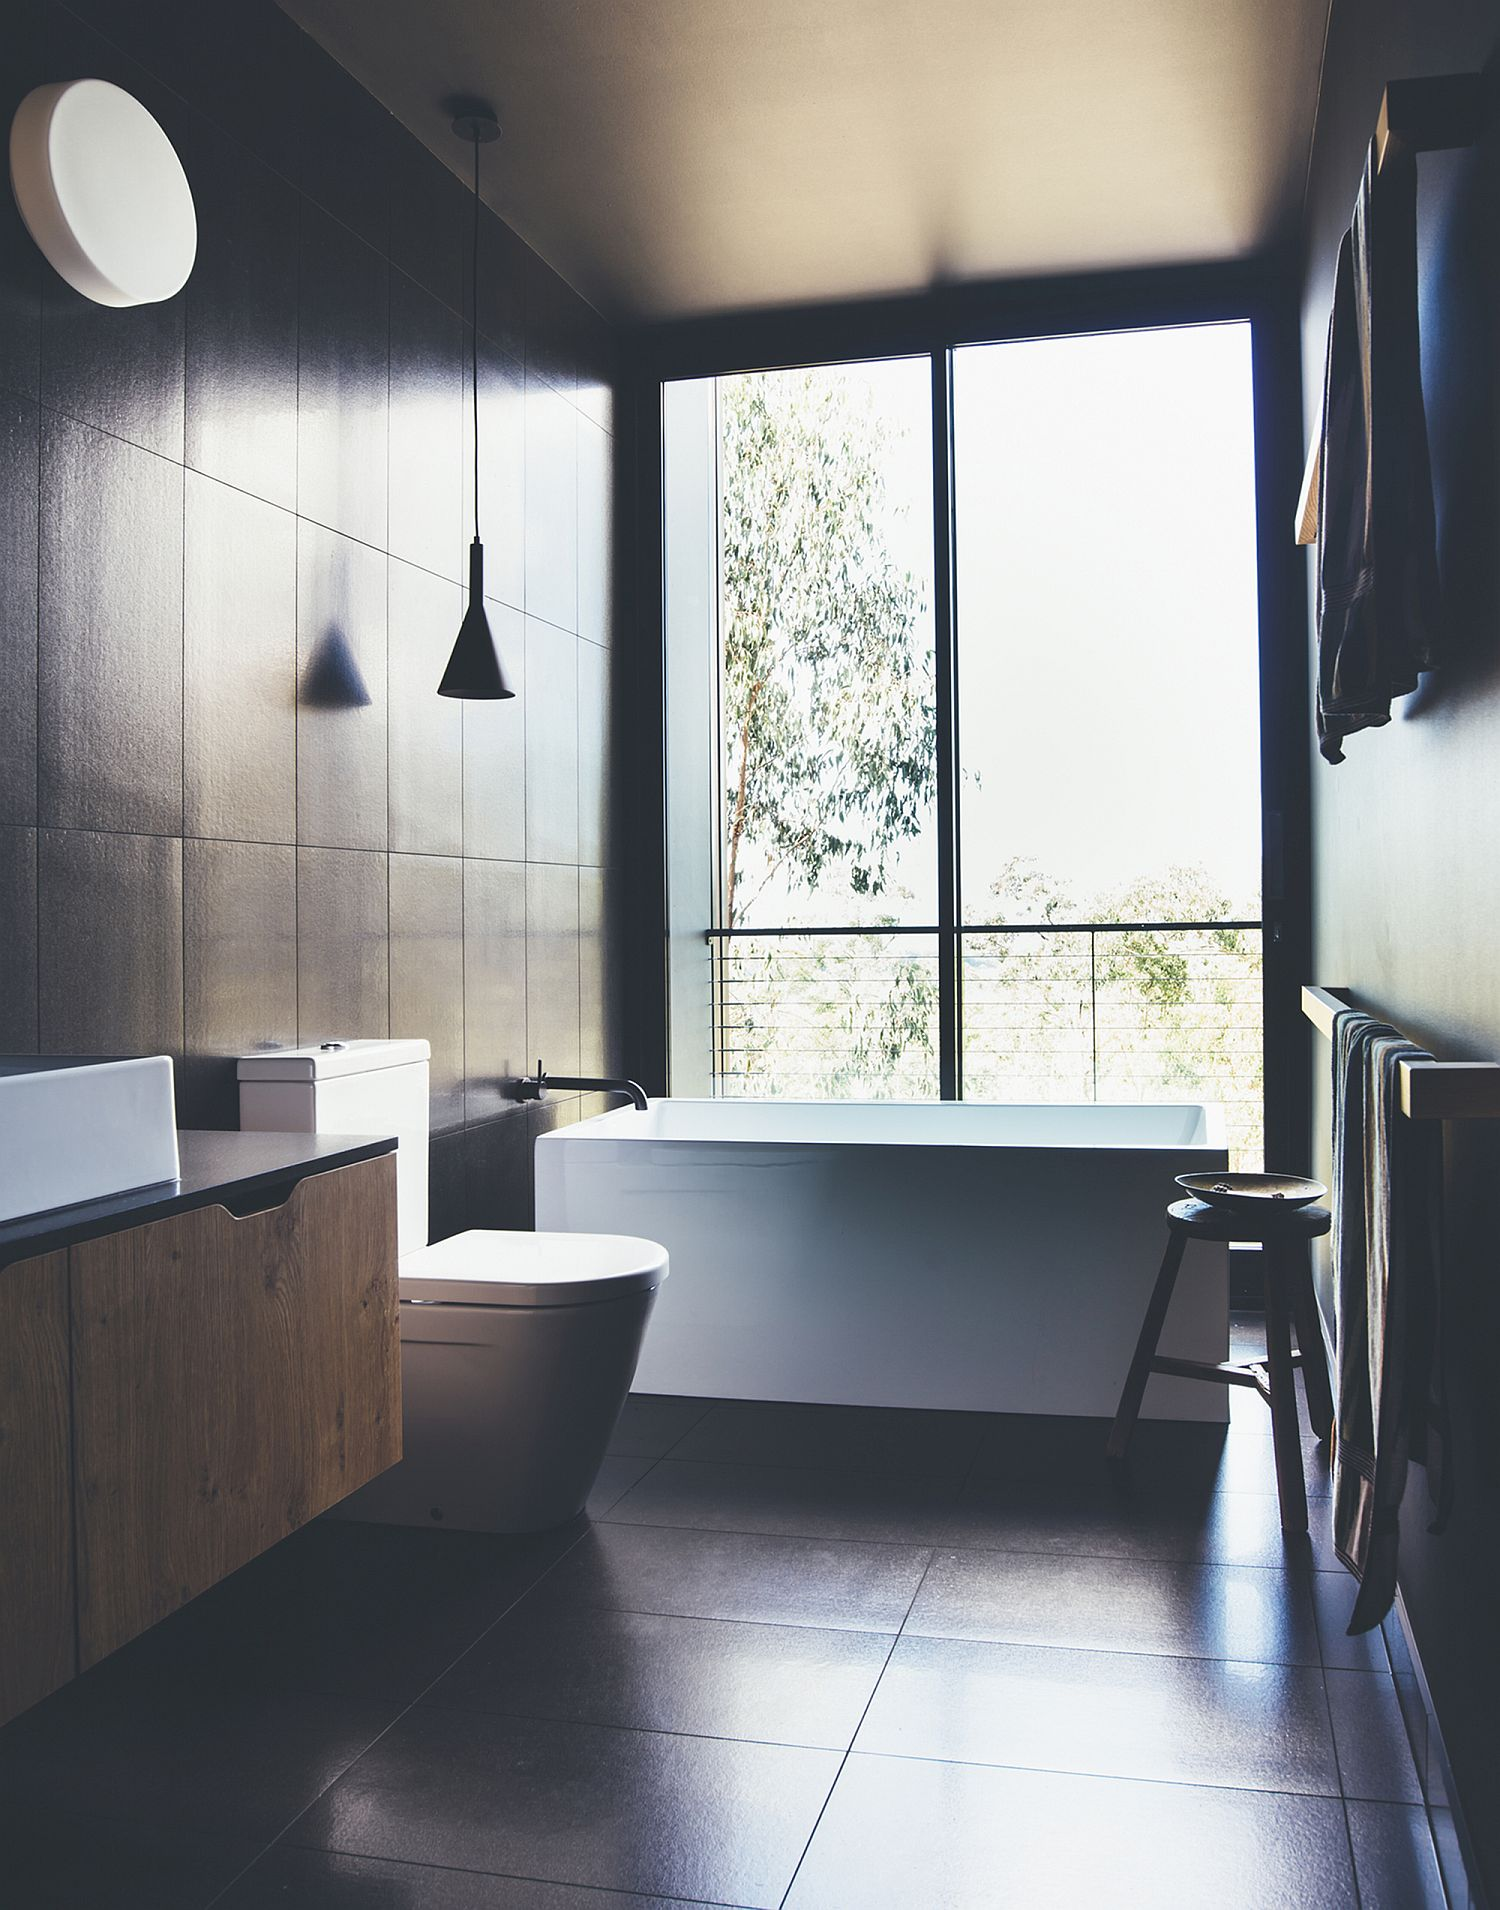 Polished and spa-styled bathroom in black